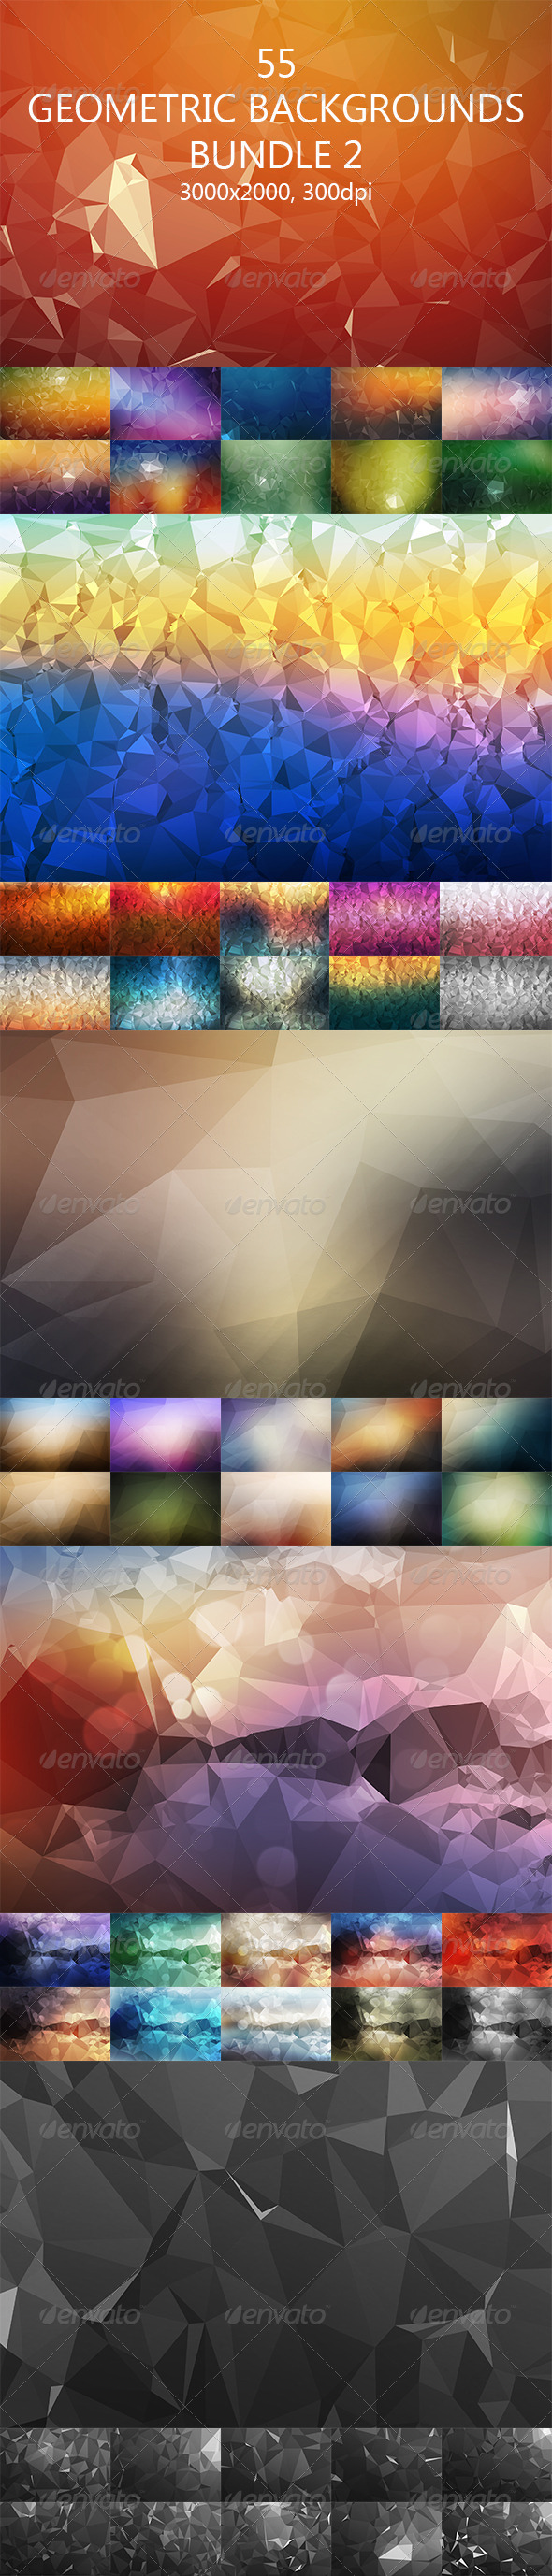 GraphicRiver 55 Geometric Backgrounds Bundle 2 8242134